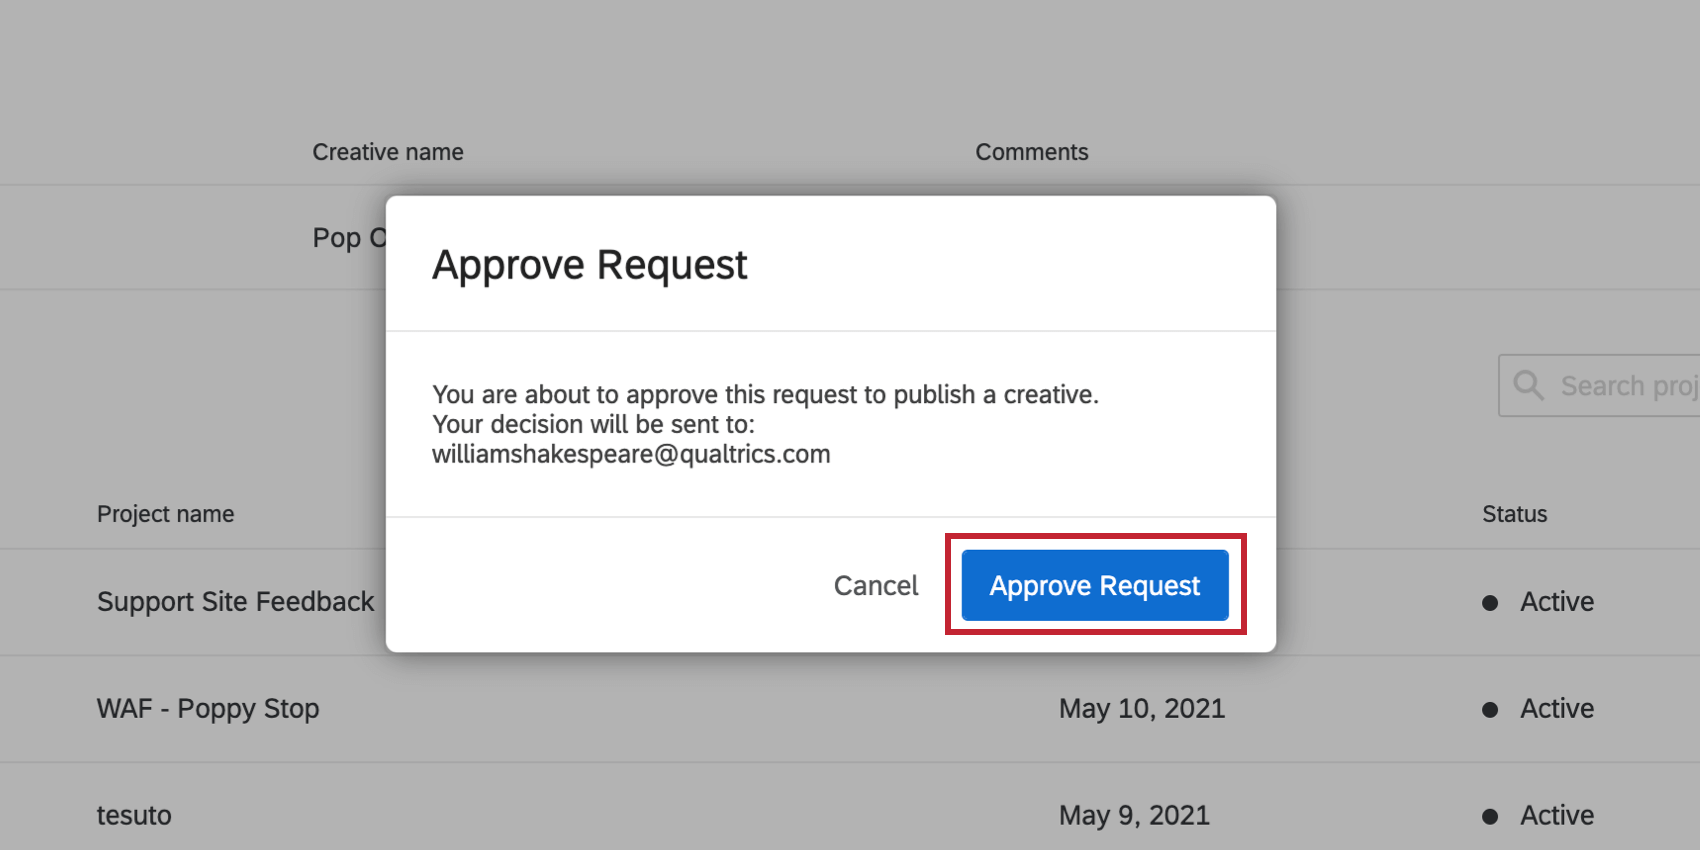 Approve Request button is indicated in the Approve Request window